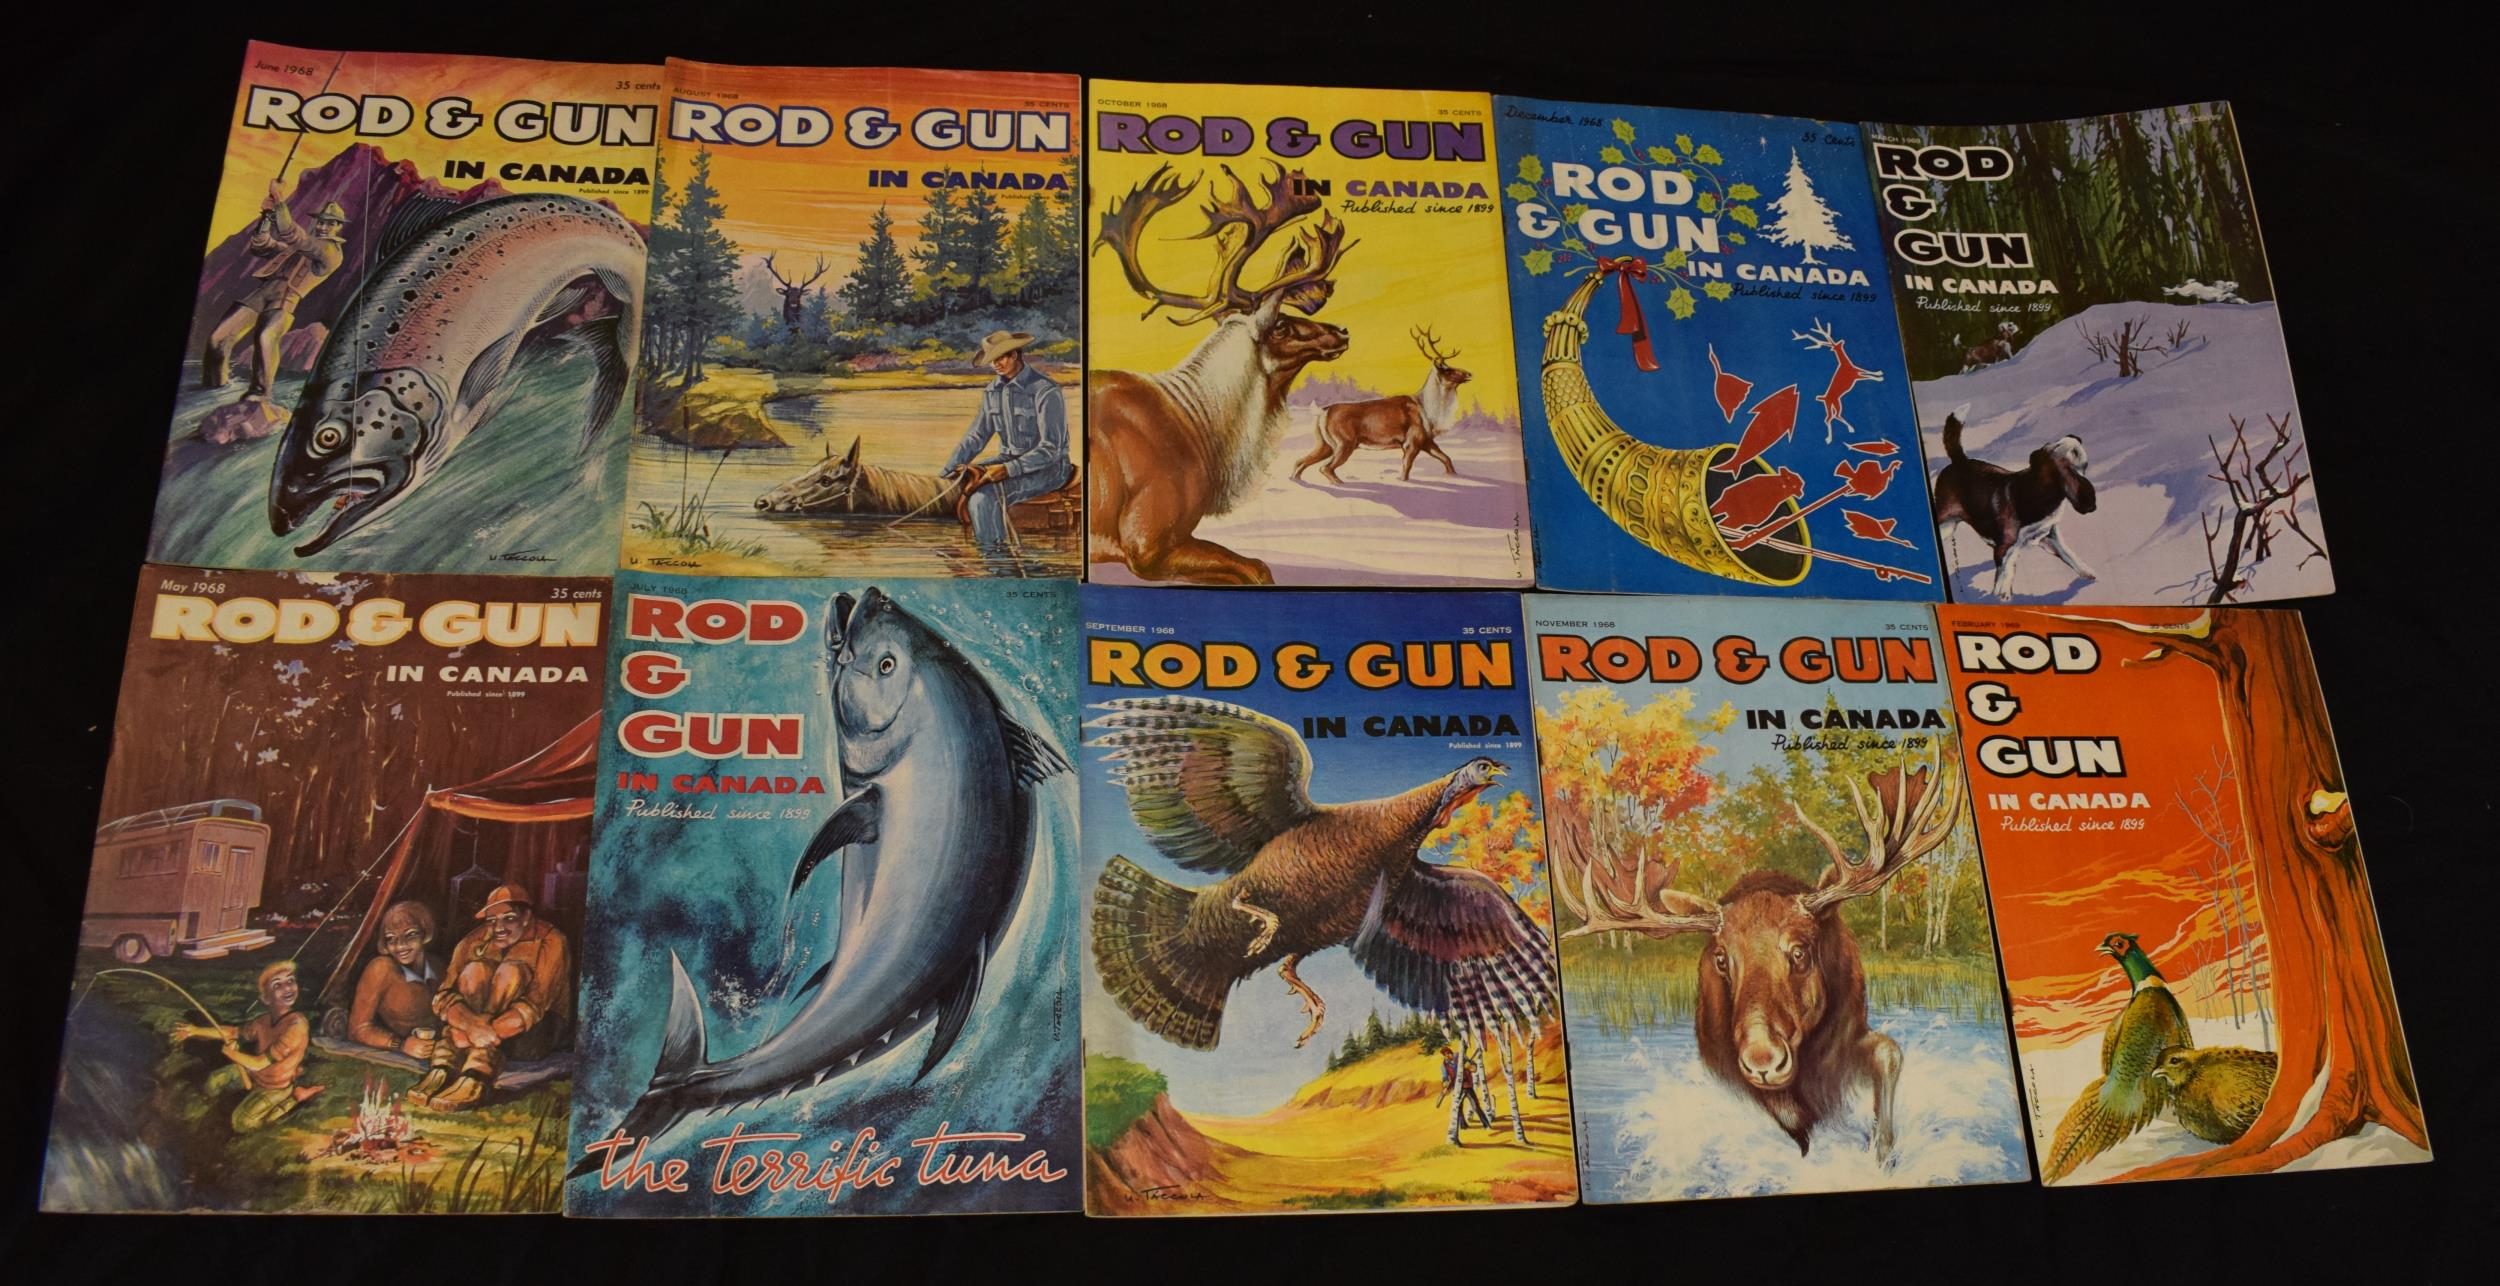 A collection of vintage 1960s 'Rod & Gun in Canada' magazines. Fishing and country sports